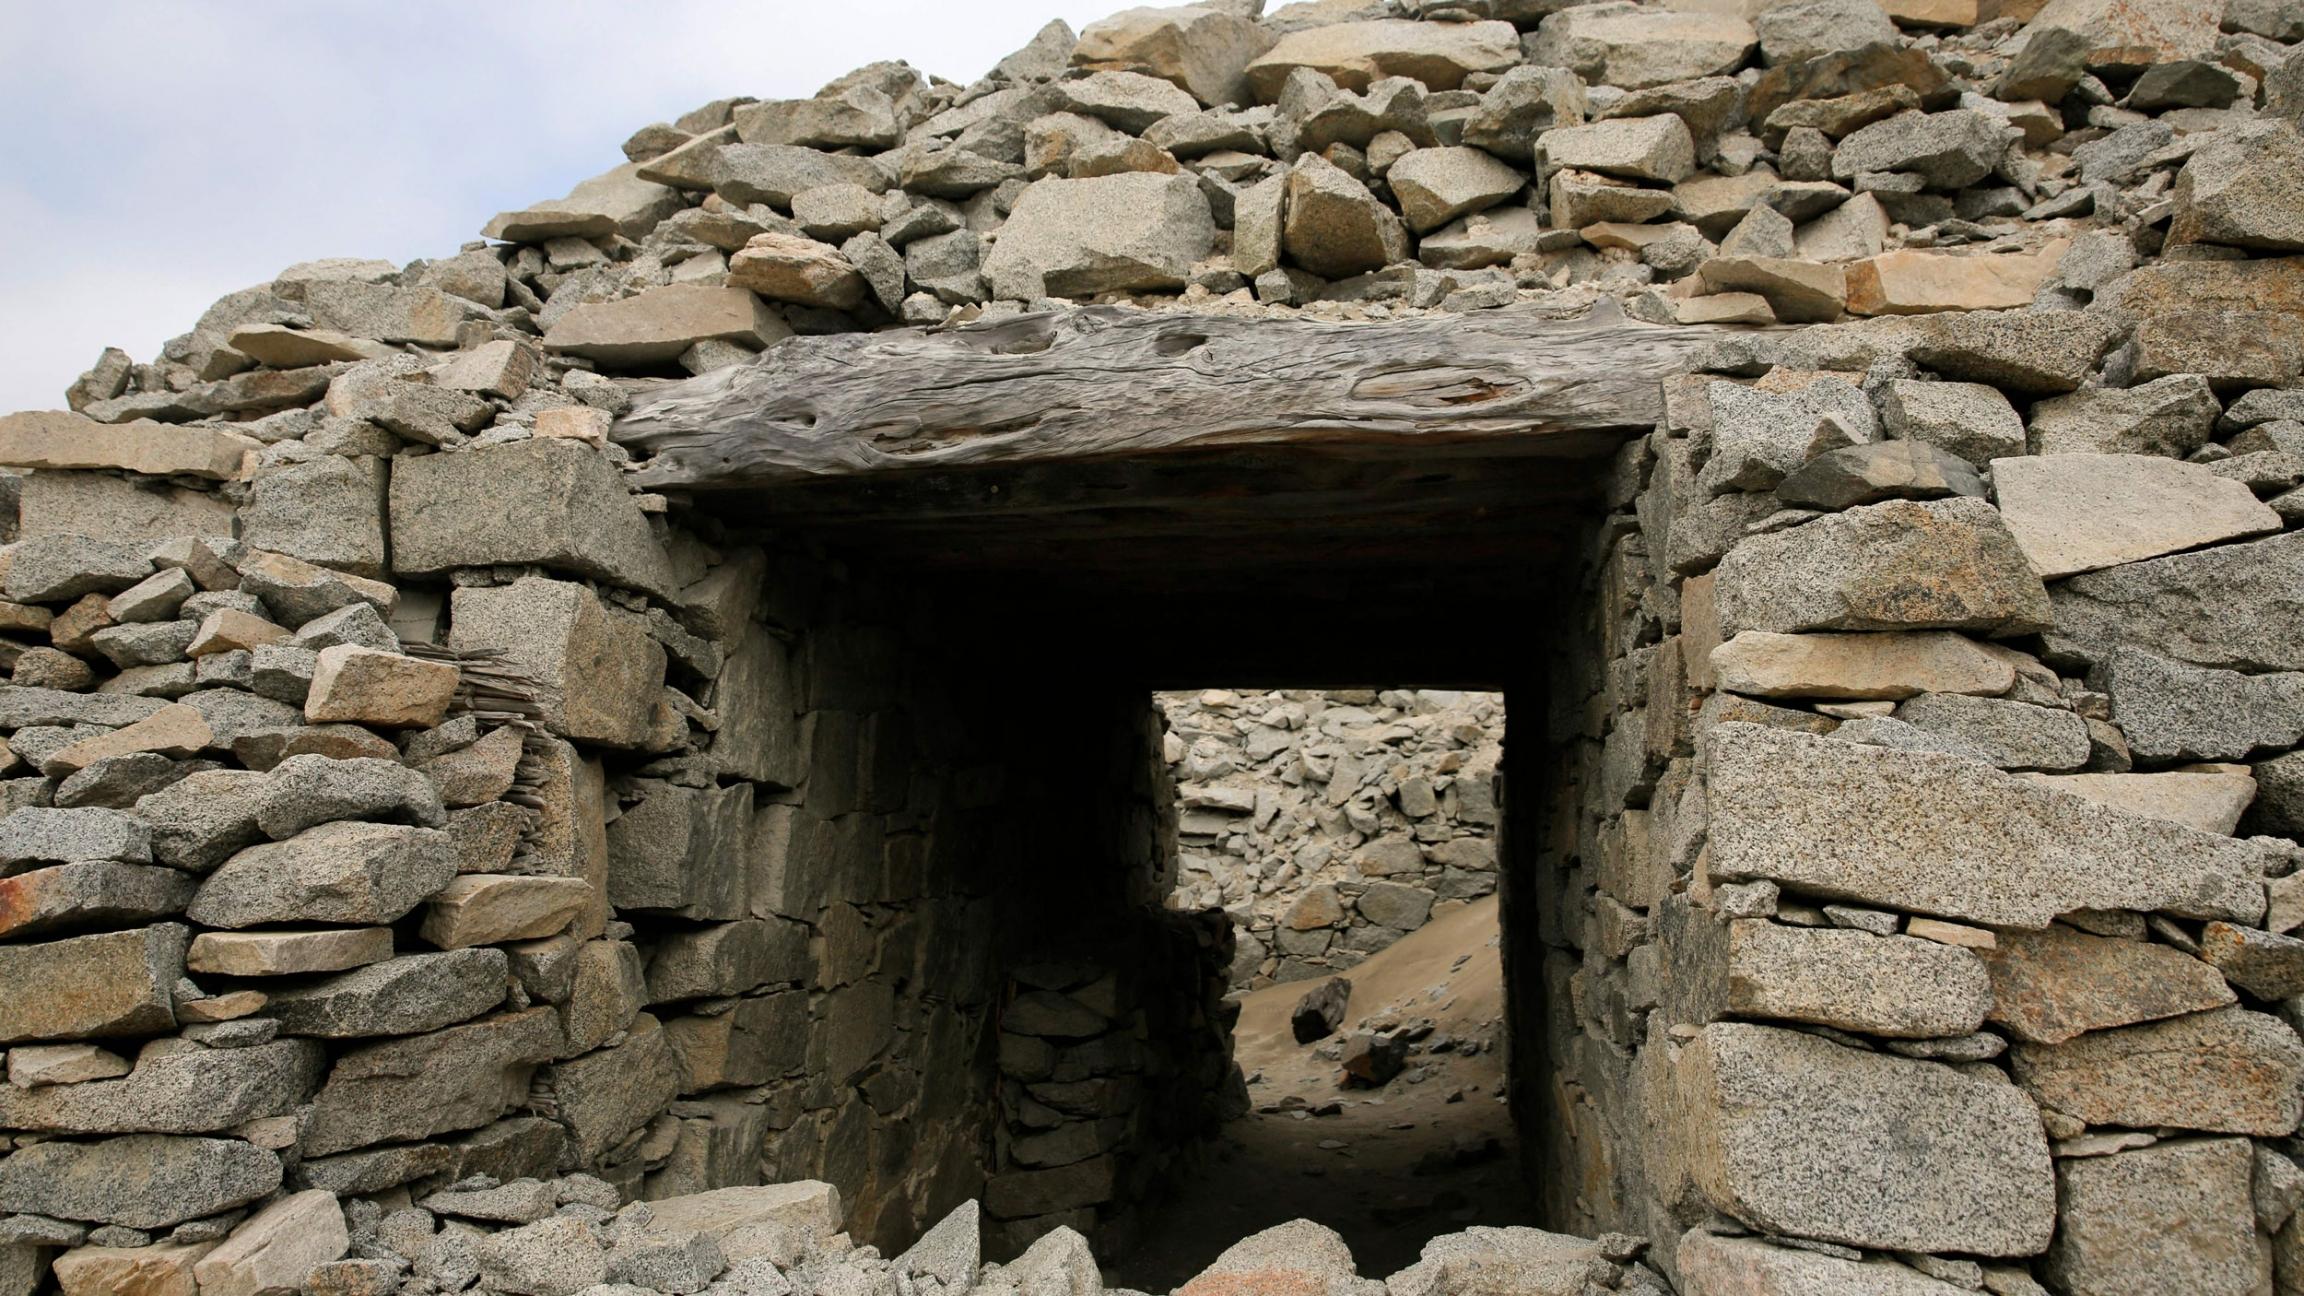 A large pile of stones are shown with a square opening and a passageway.